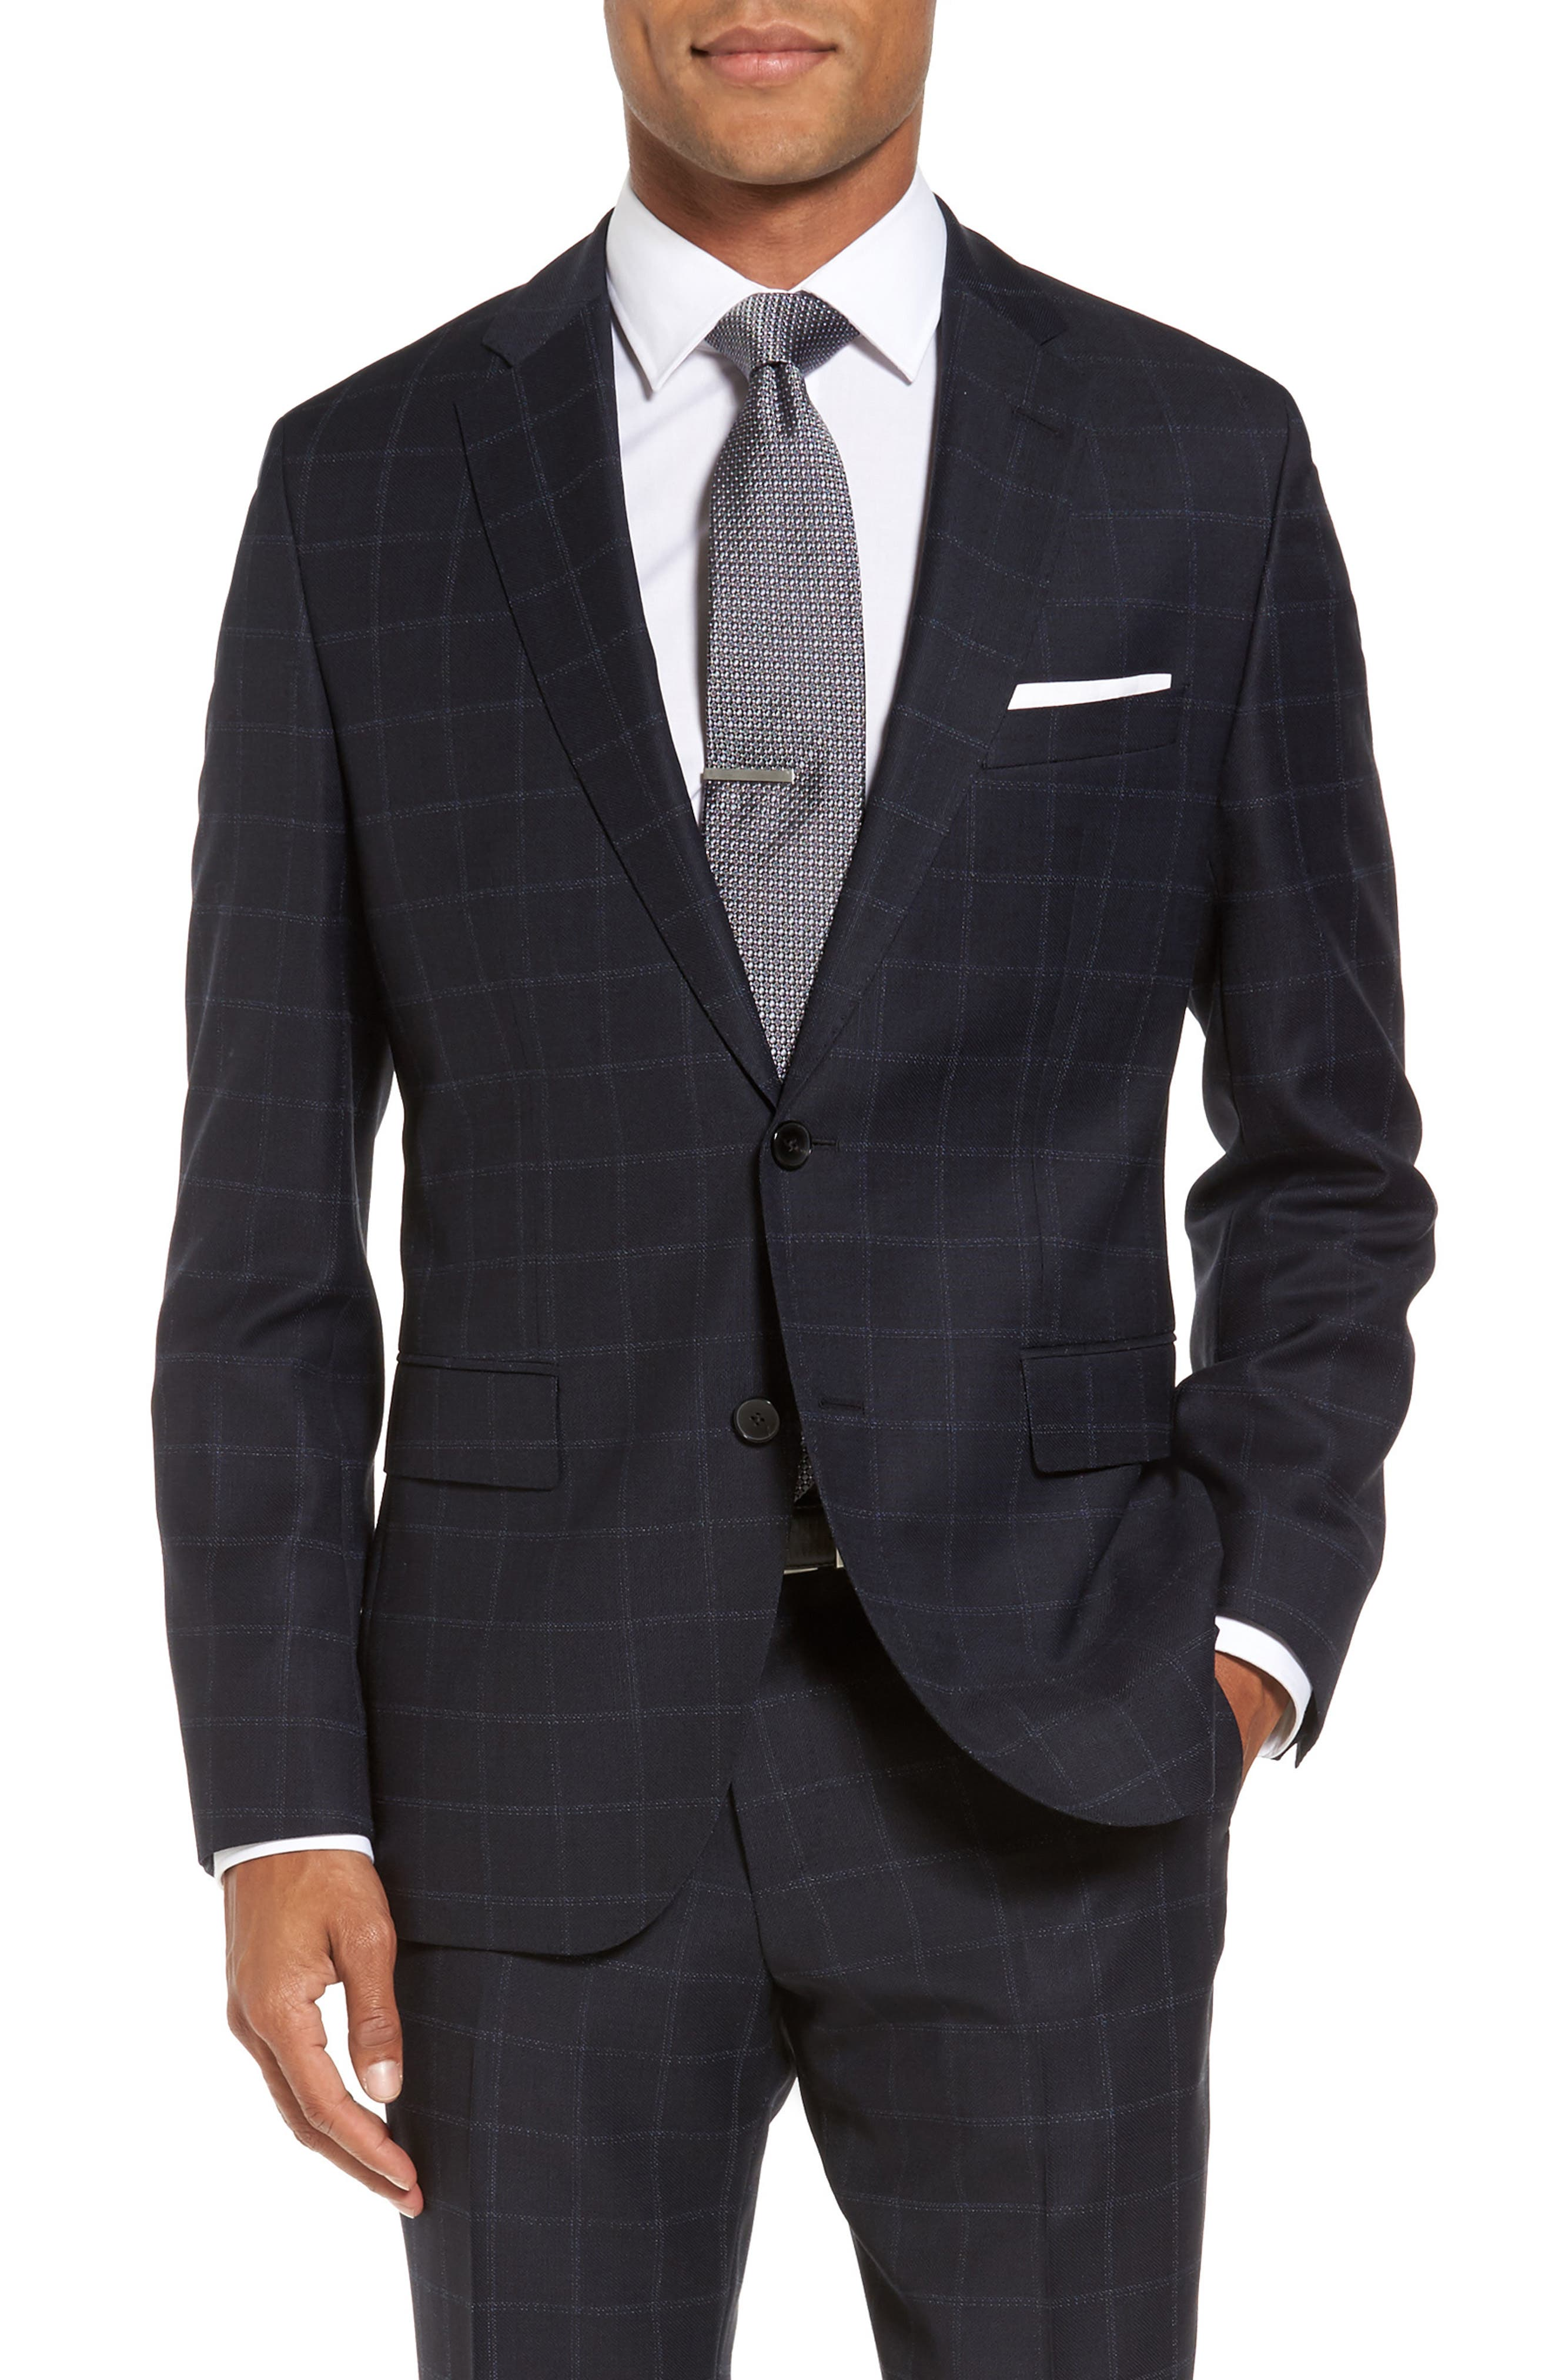 Johnstons/Lenon Classic Fit Windowpane Wool Suit,                             Alternate thumbnail 5, color,                             410